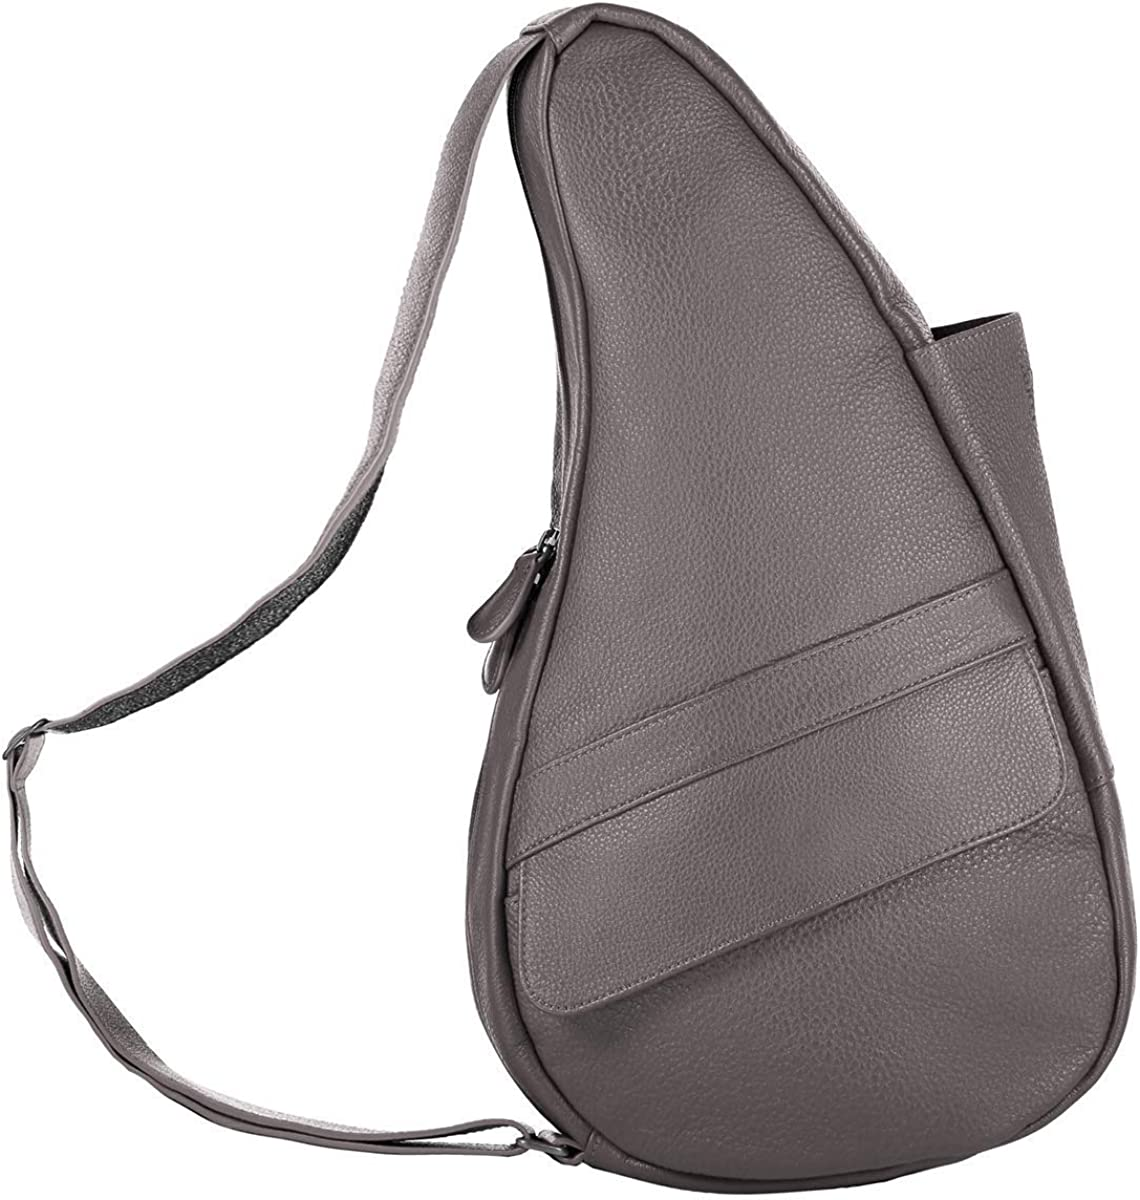 AmeriBag Classic Healthy Back Bag tote Leather Small Grey